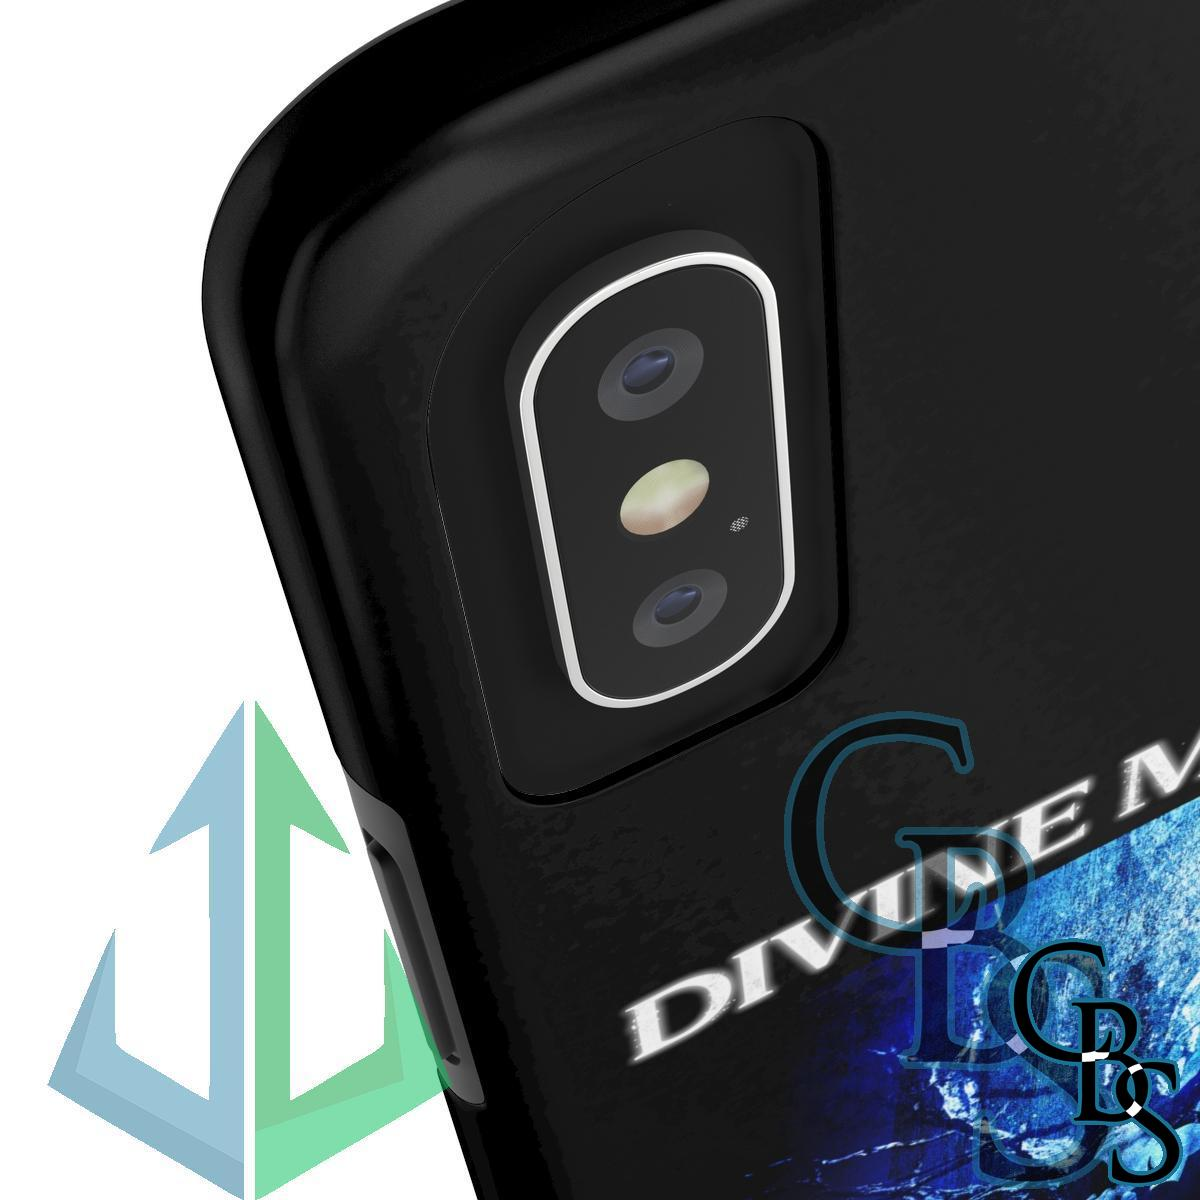 Divine Martyr – More Than What You Are (Version 1) Tough iPhone Cases (iPhone 7/7 Plus, iPhone 8/8 Plus, iPhone X, XS, XR, iPhone 11, 11 Pro, 11 Pro Max)